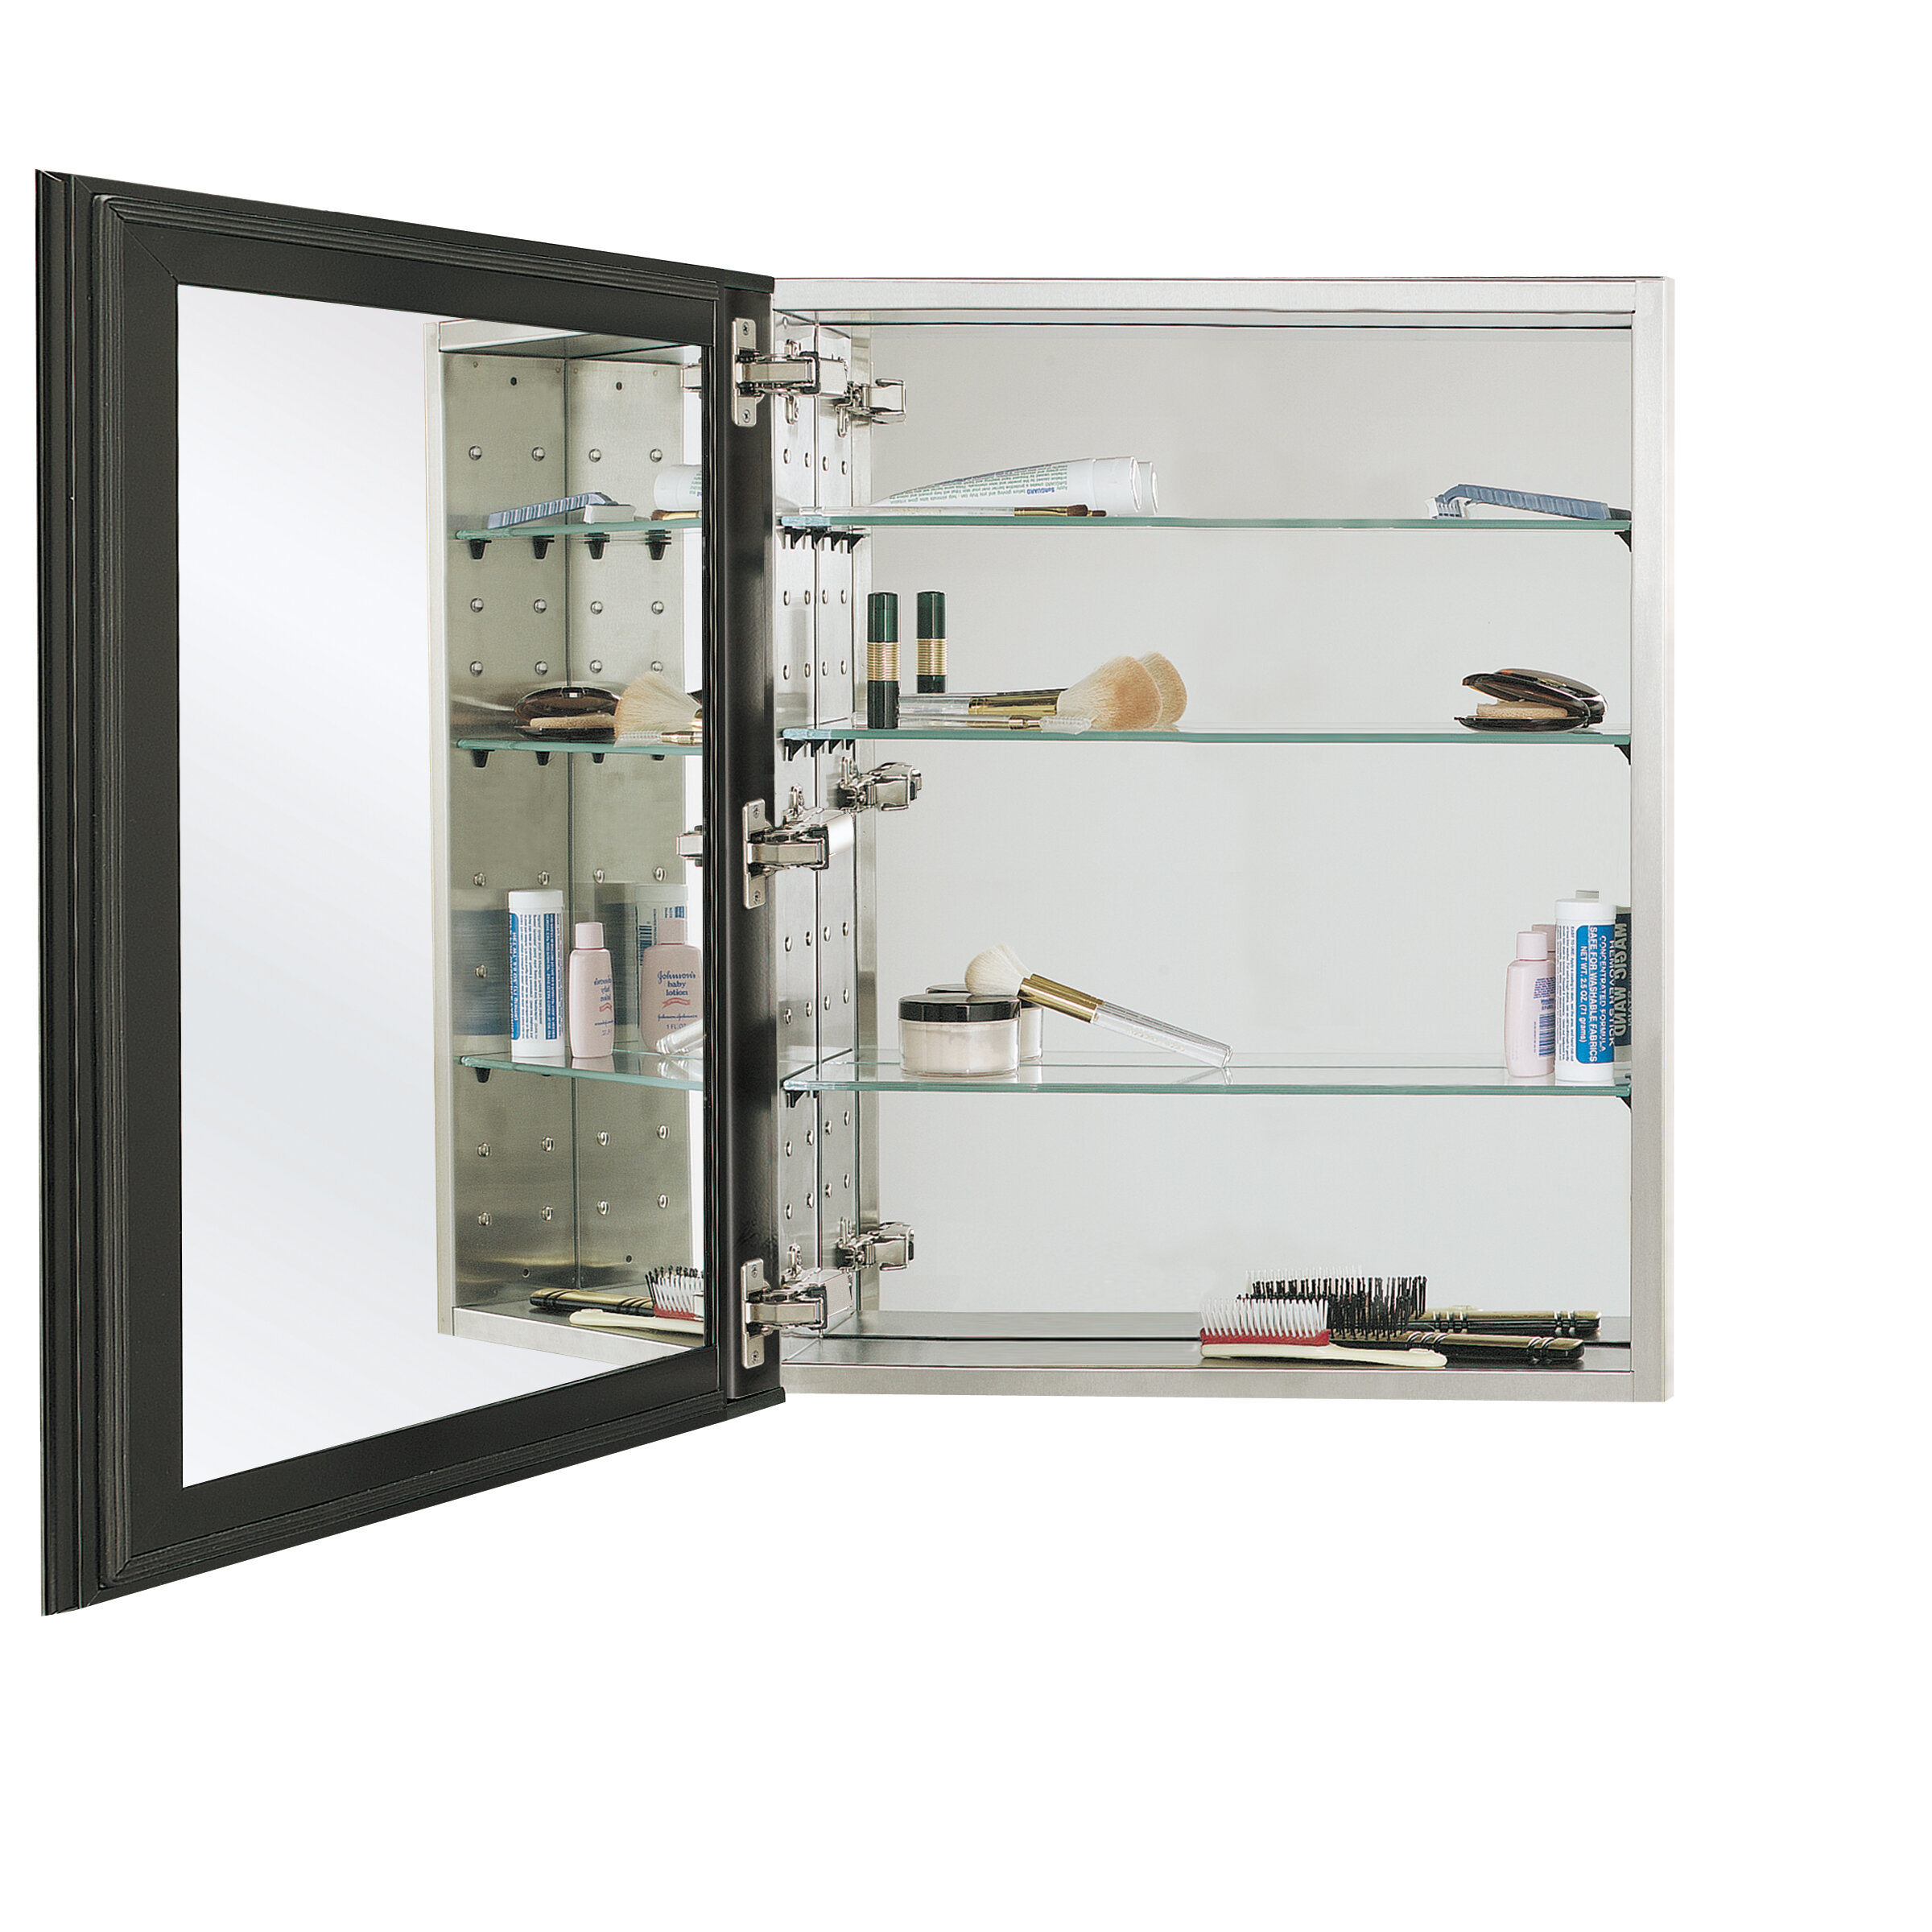 "Reflections Oversize Series 4"" x 4"" Recessed Medicine Cabinet"